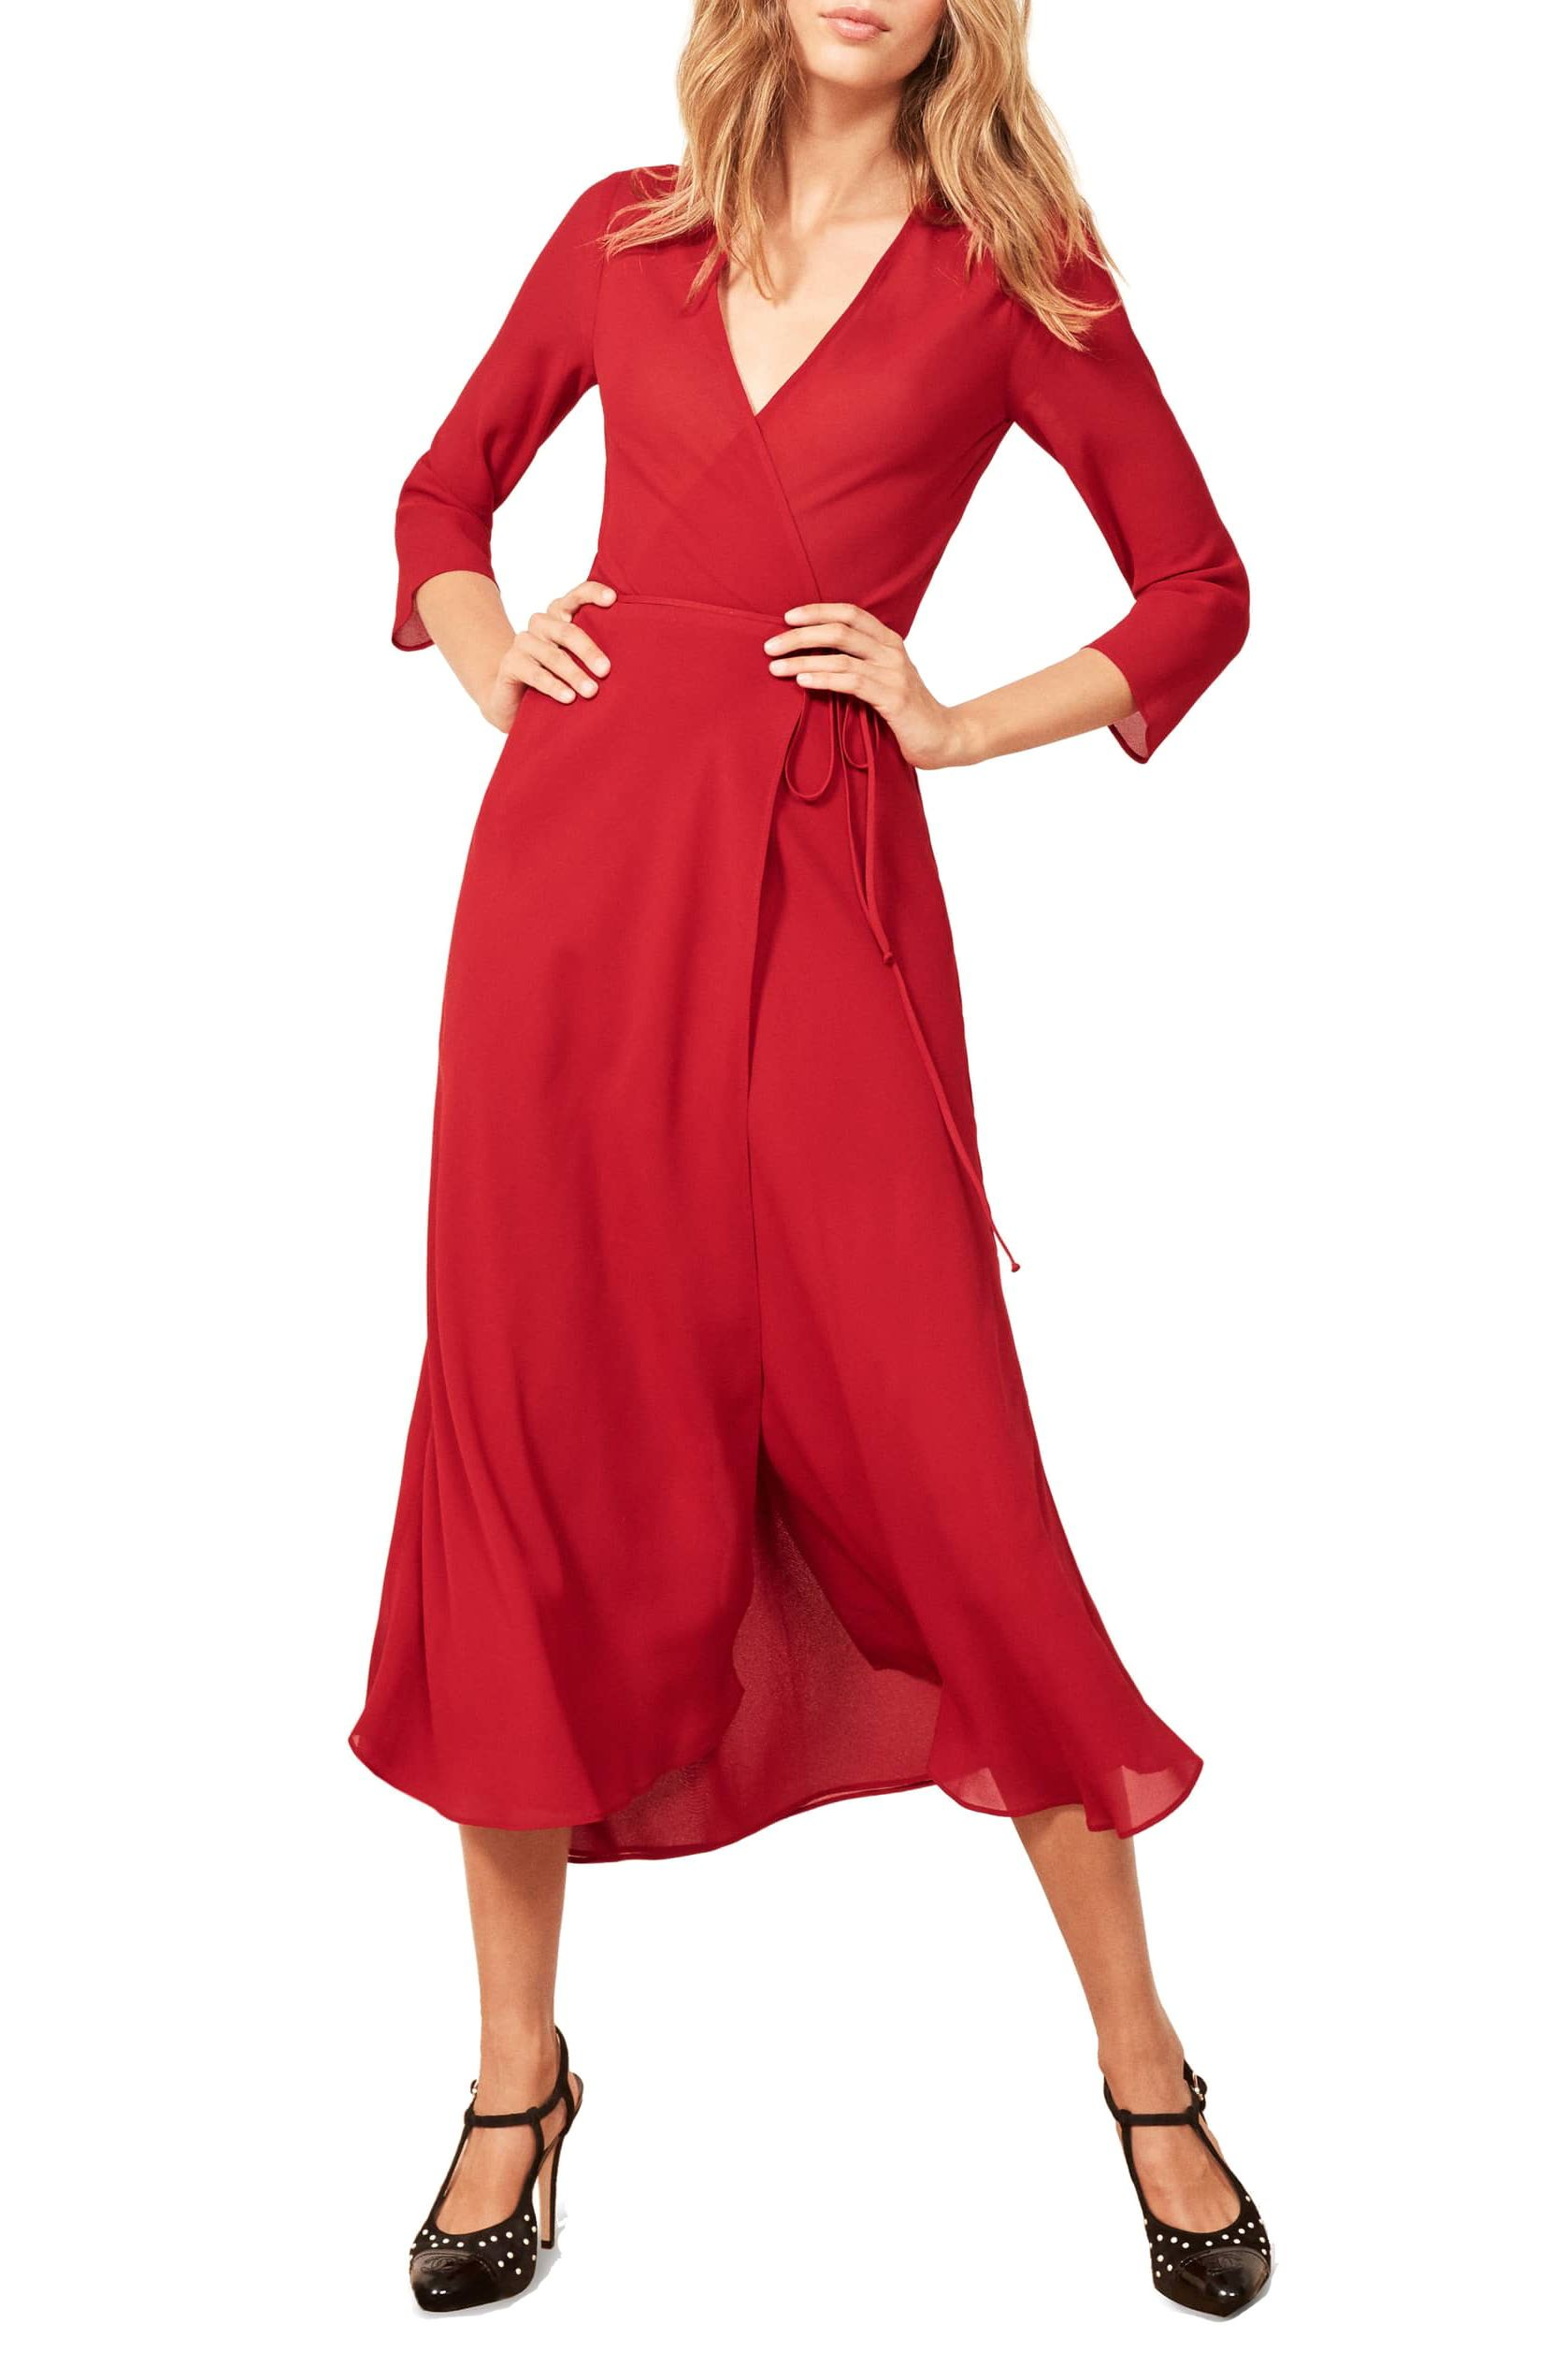 How To Copy Meghan Markle S Stunning Red Dress For Less Dresses Red Outfits For Women Midi Dress [ 2546 x 1660 Pixel ]